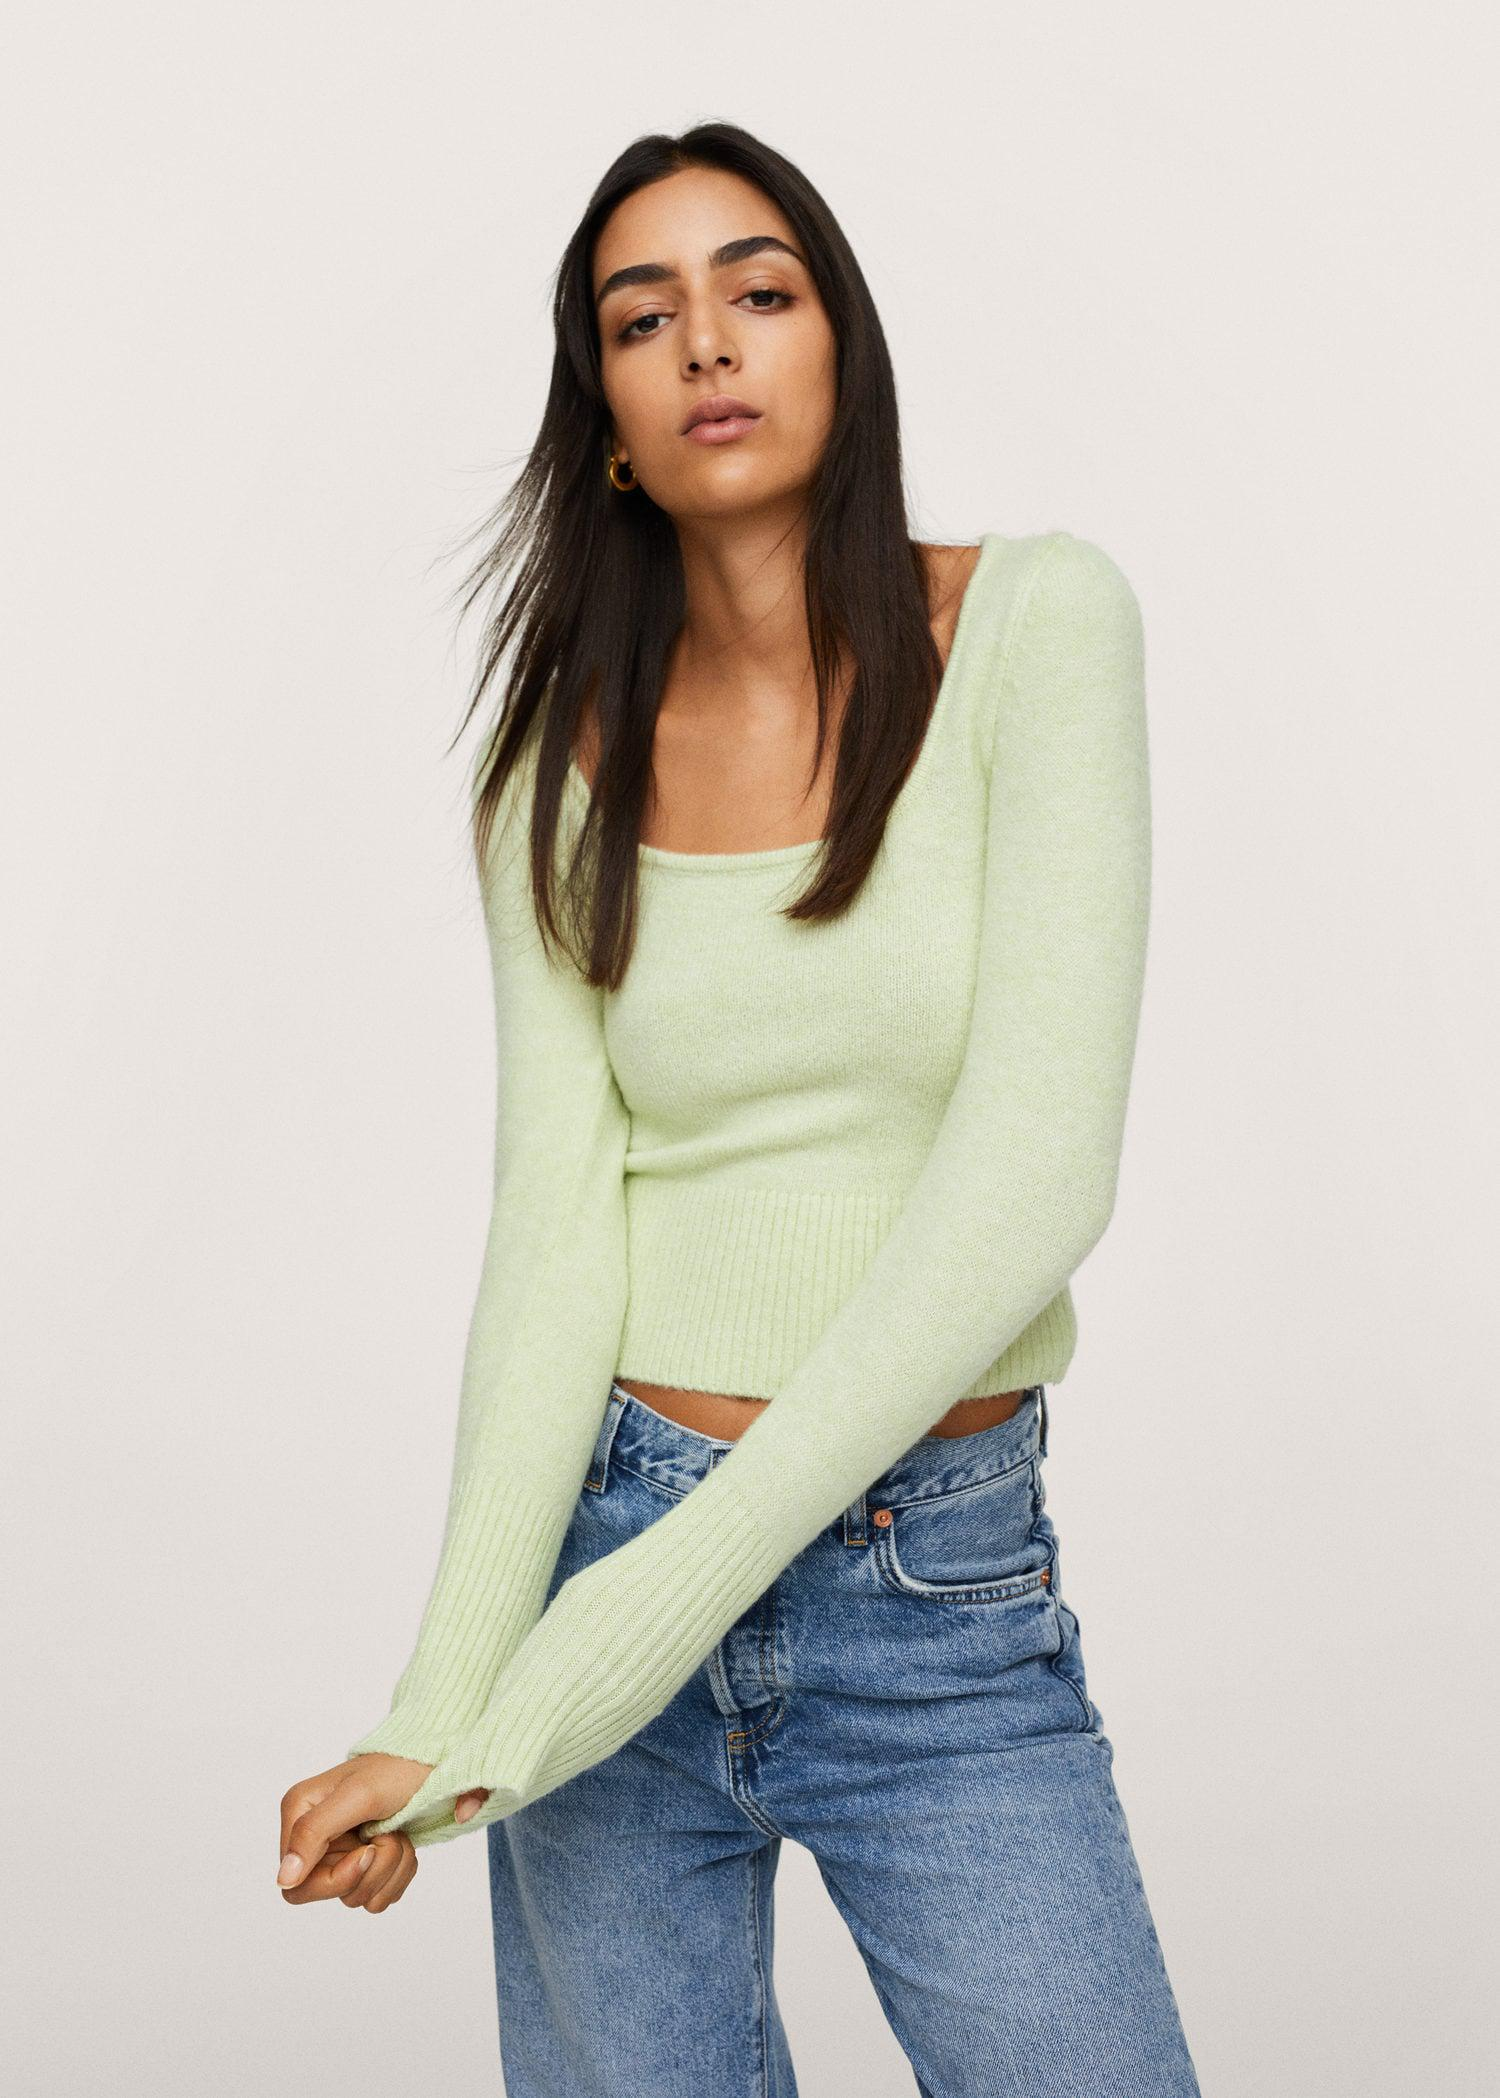 Textured knit sweater